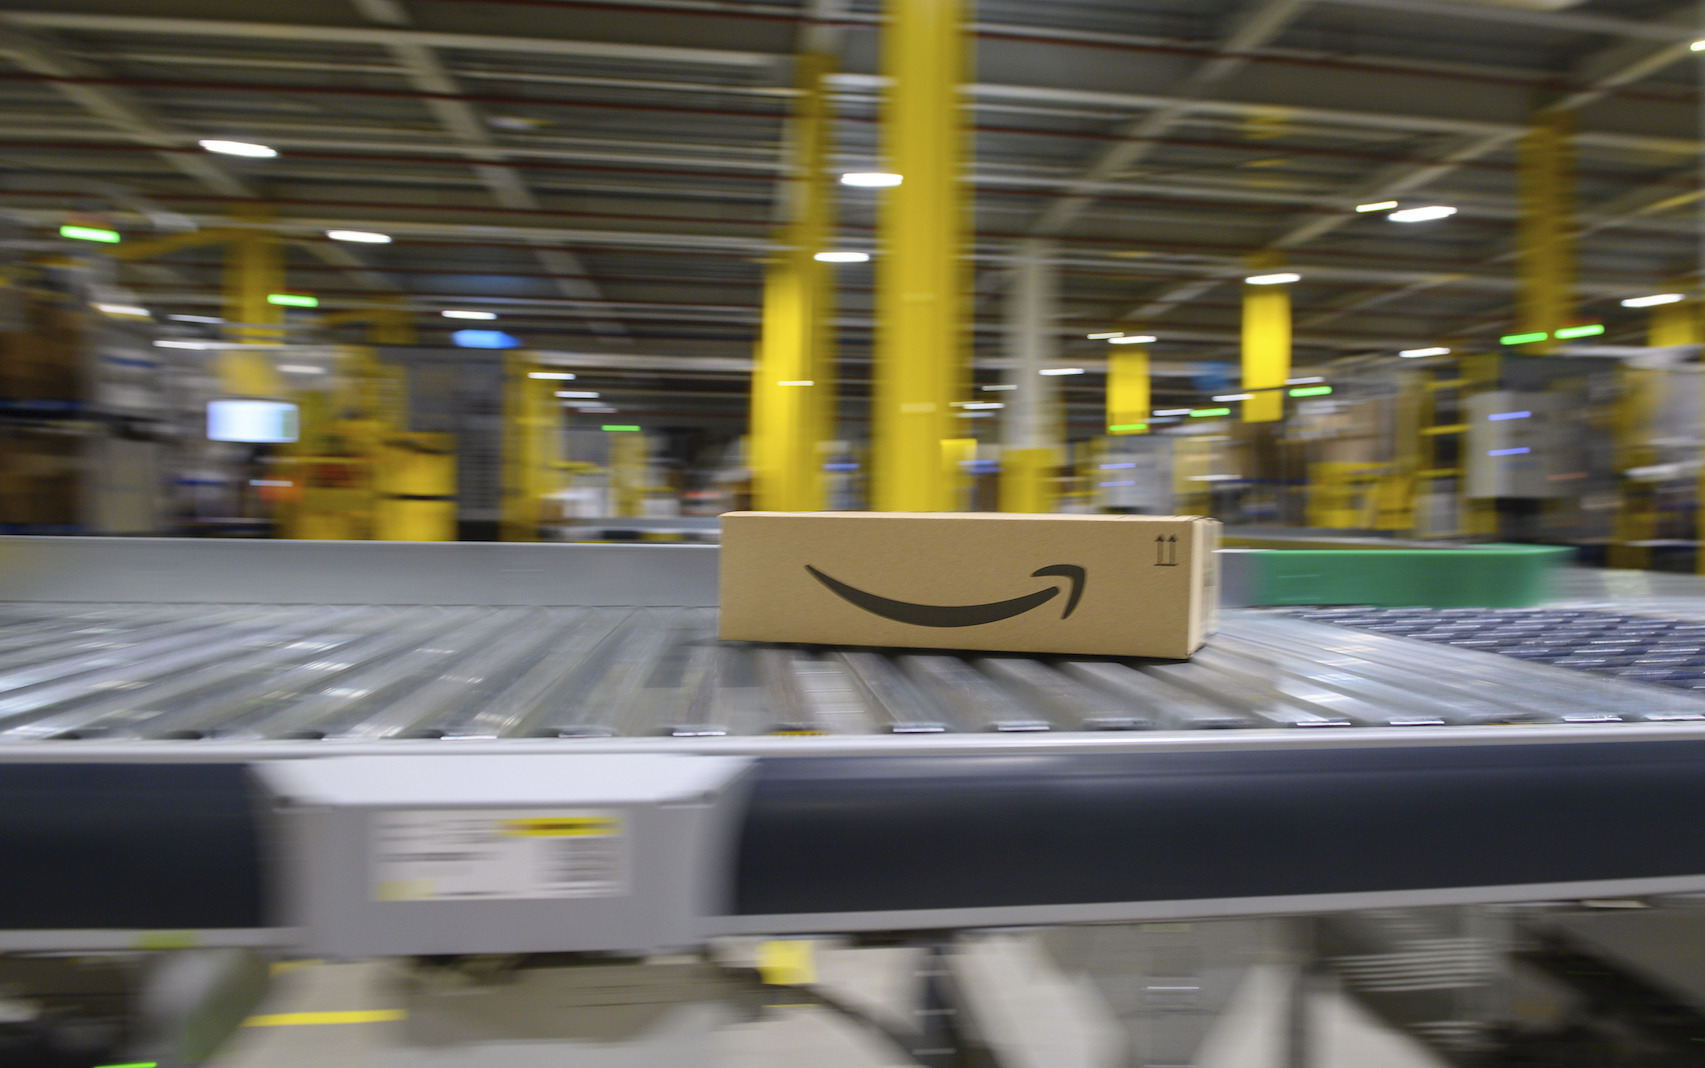 Less than a week after Bloomberg first reported when Prime Day would be held, Amazon has officially confirmed that it will host the two-day shopping event on June 21-22.